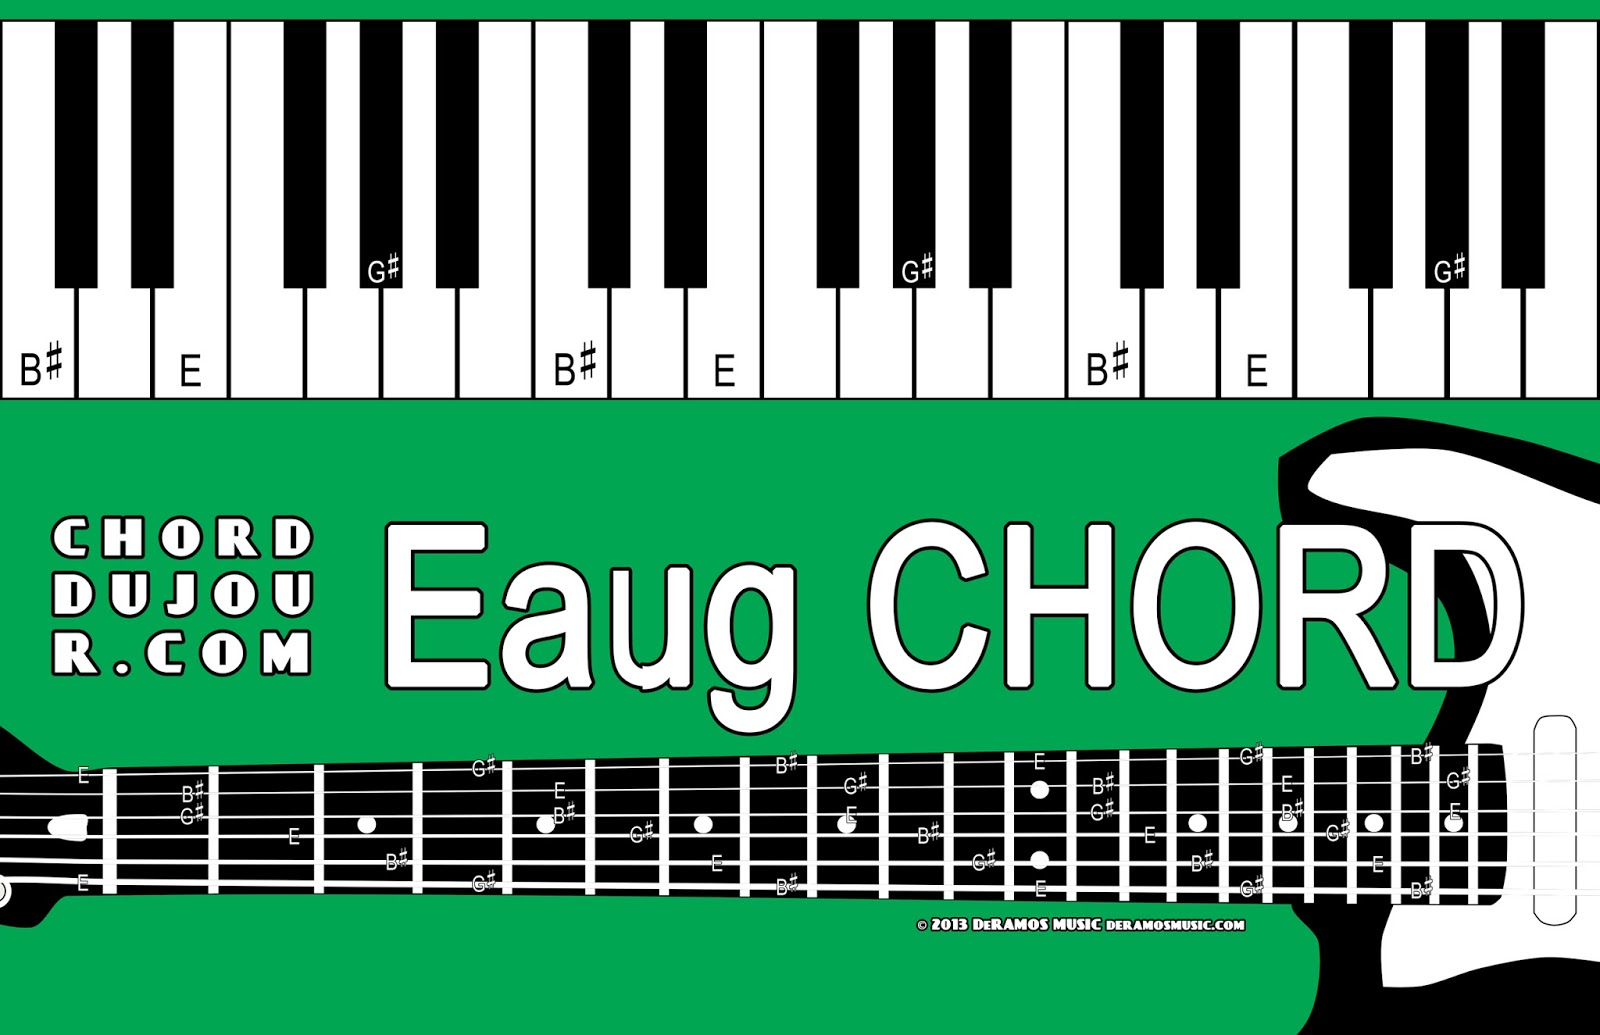 Chord Du Jour Dictionary Eaug Chord